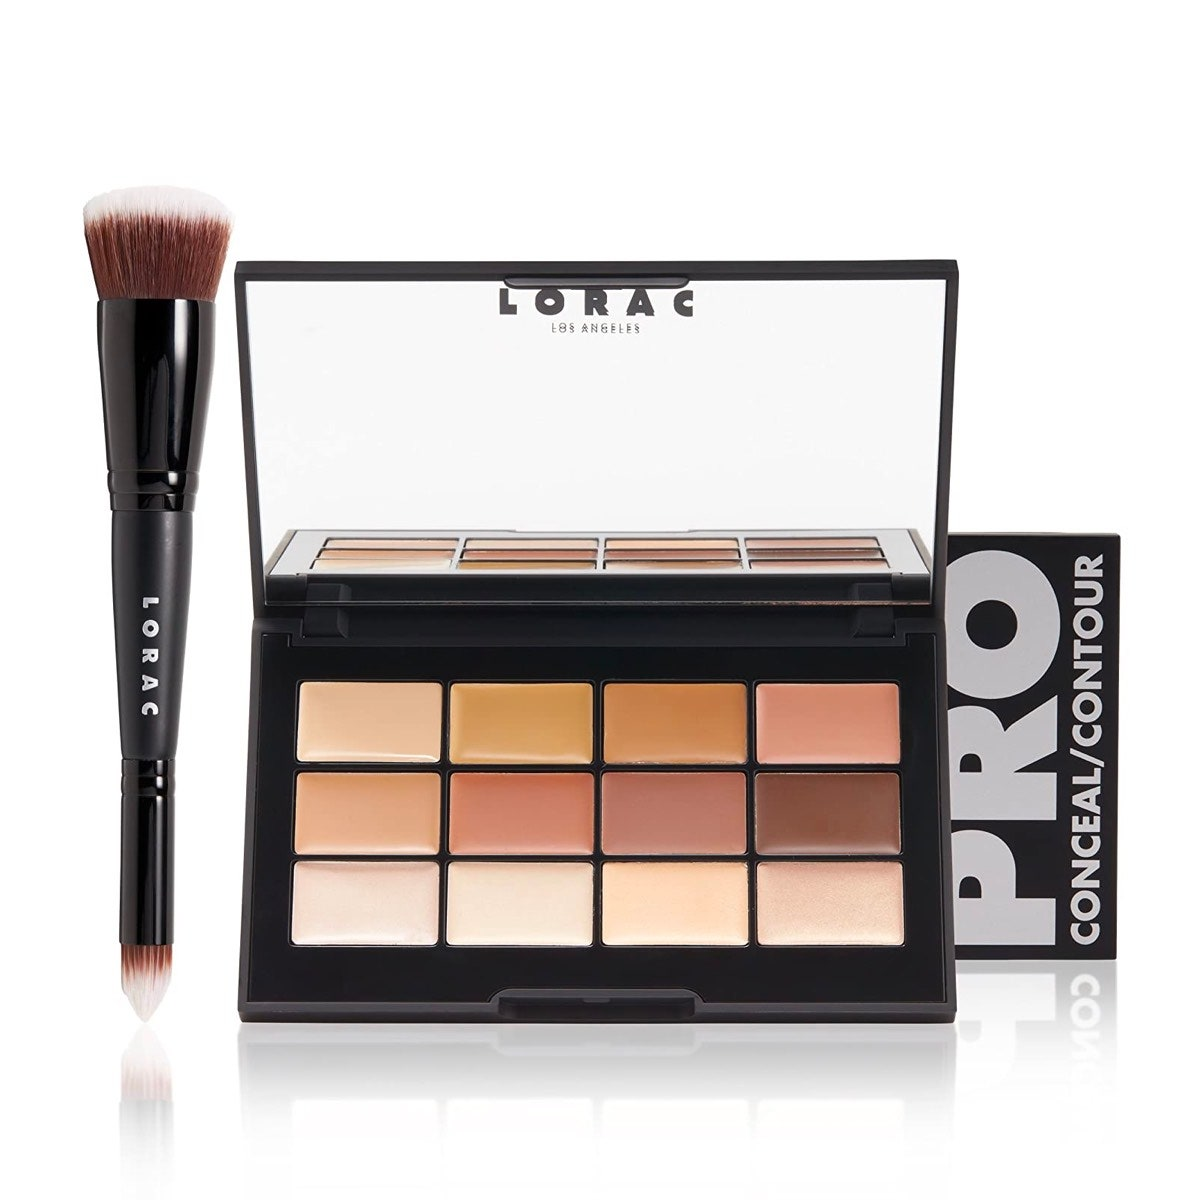 A palette of LORAC Pro Conceal/Contour and brush on a white background